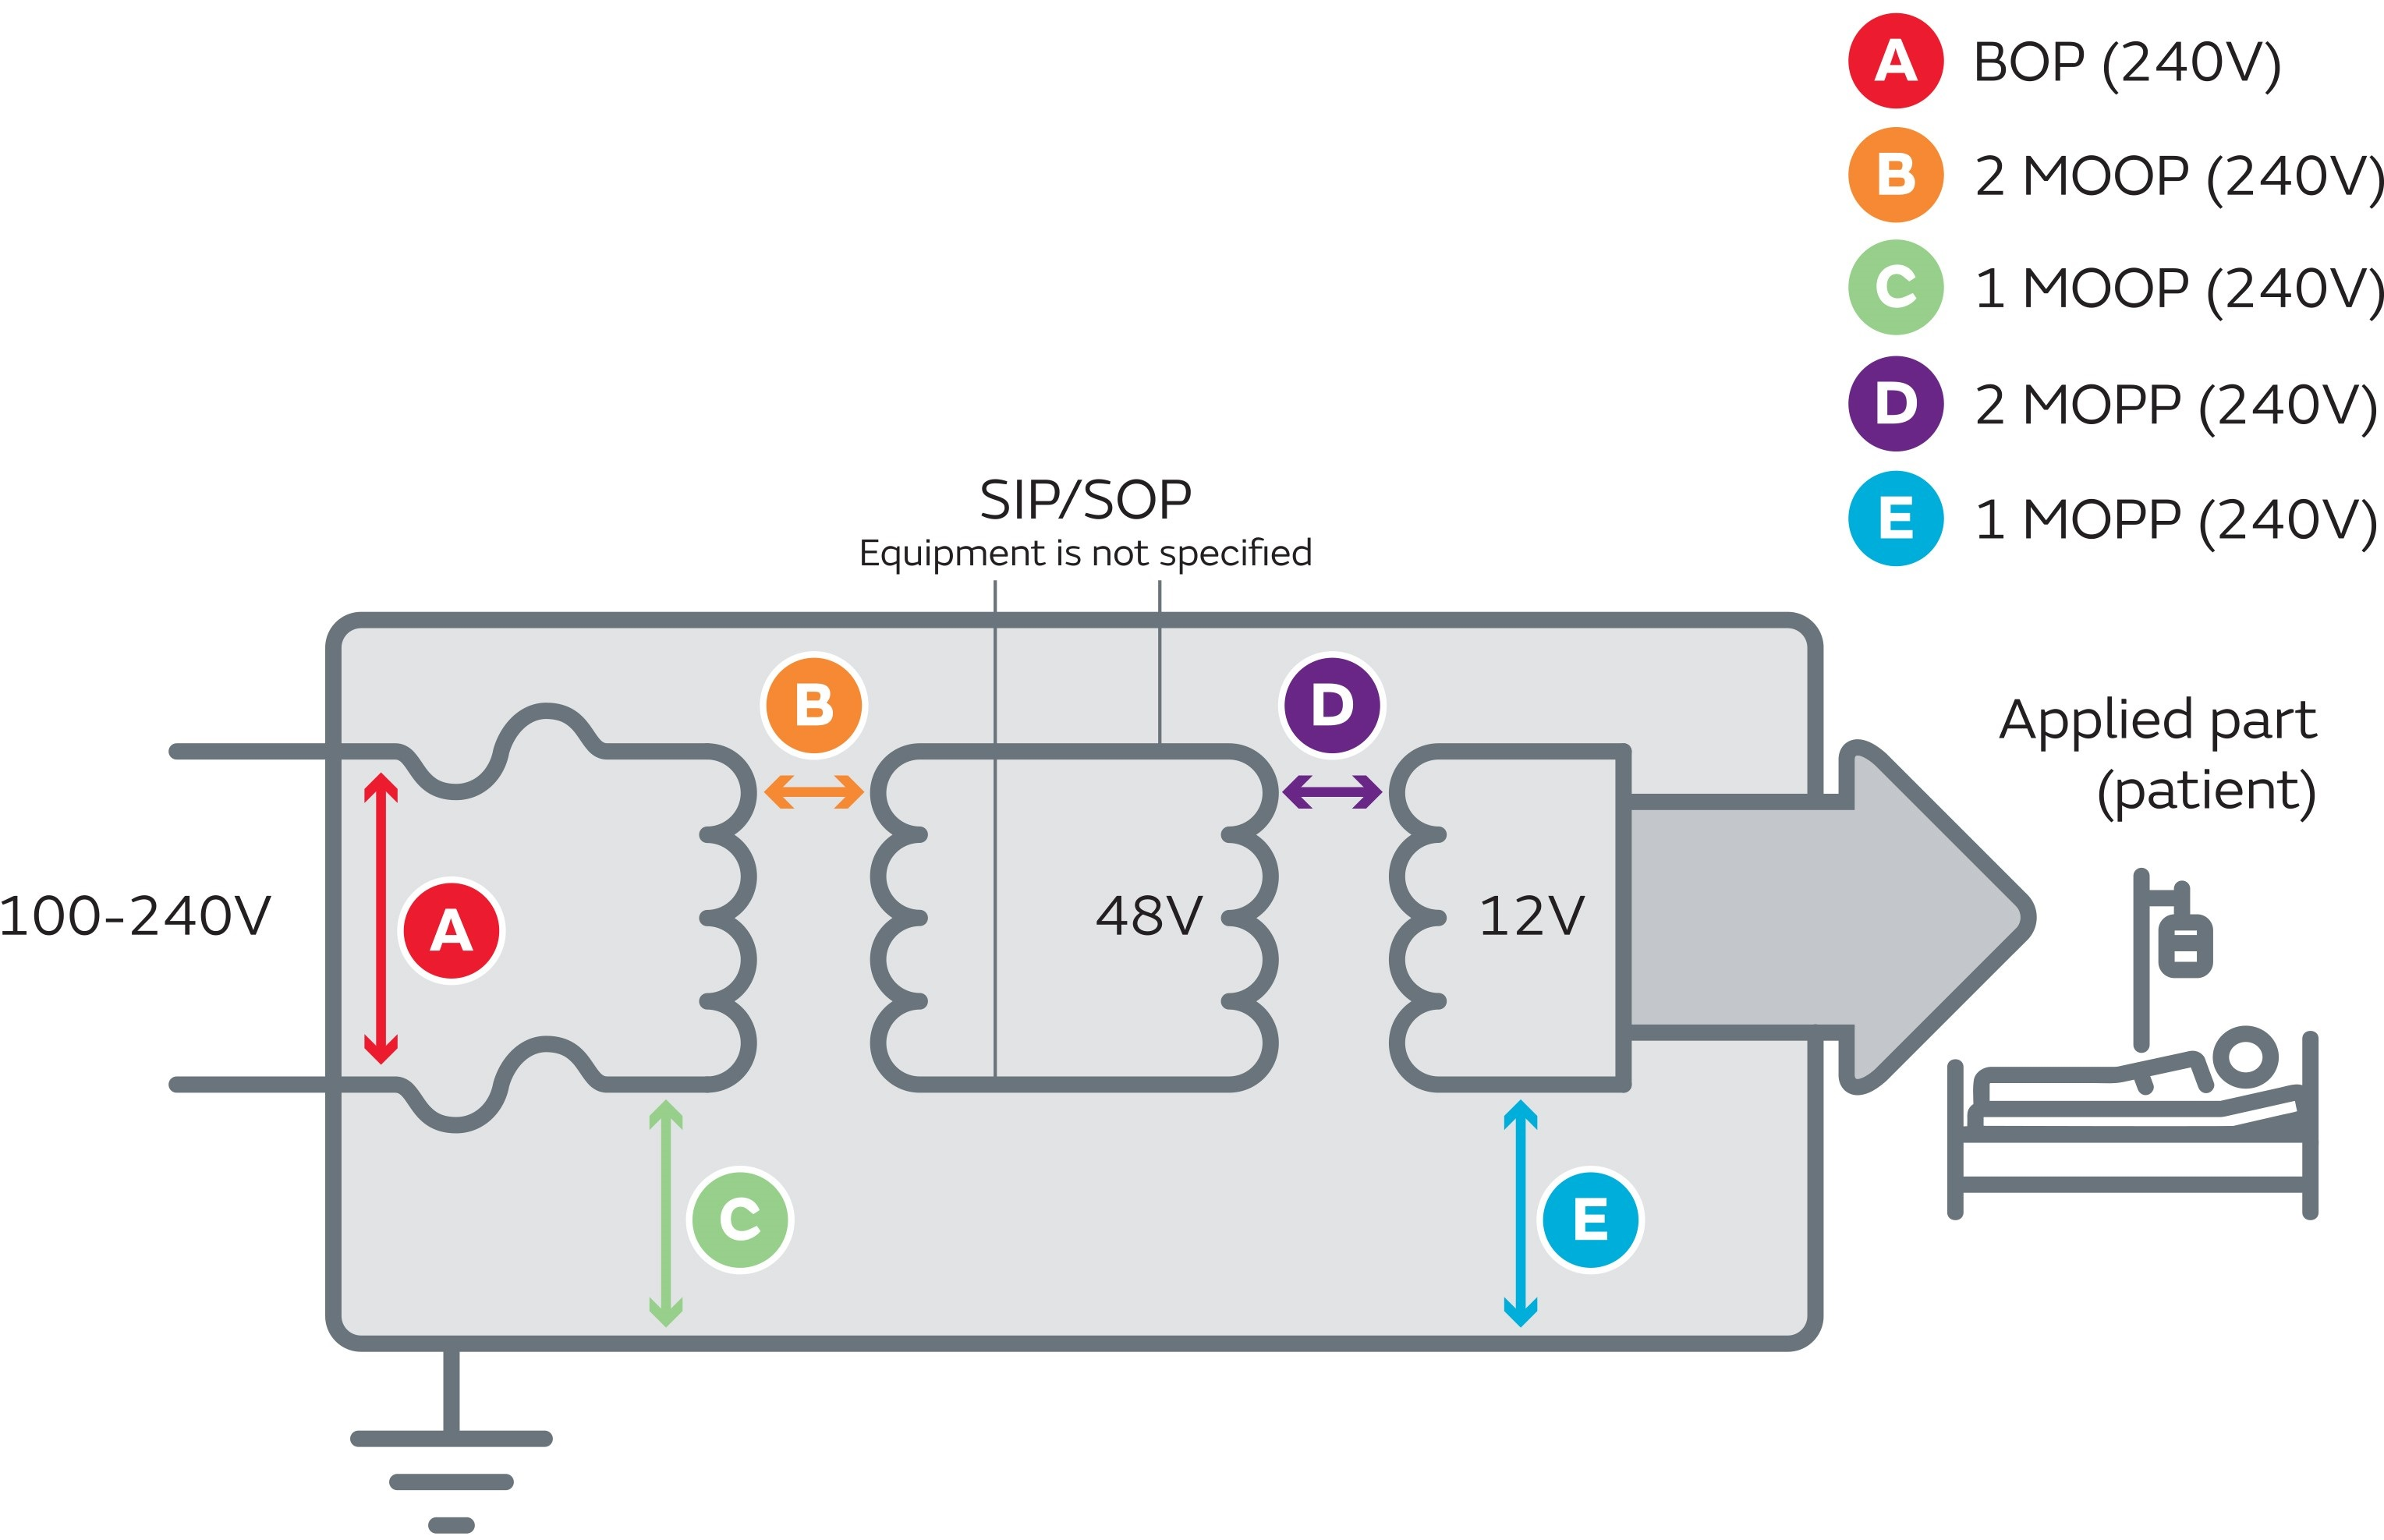 The Third Edition Medical Safety Standard Using Dc Converters Ac Power Supply Miniature Isolated Switched Wiring Circuit If Sip Sop Lines Are Specified With A Minimum Of One Mopp Only Requires